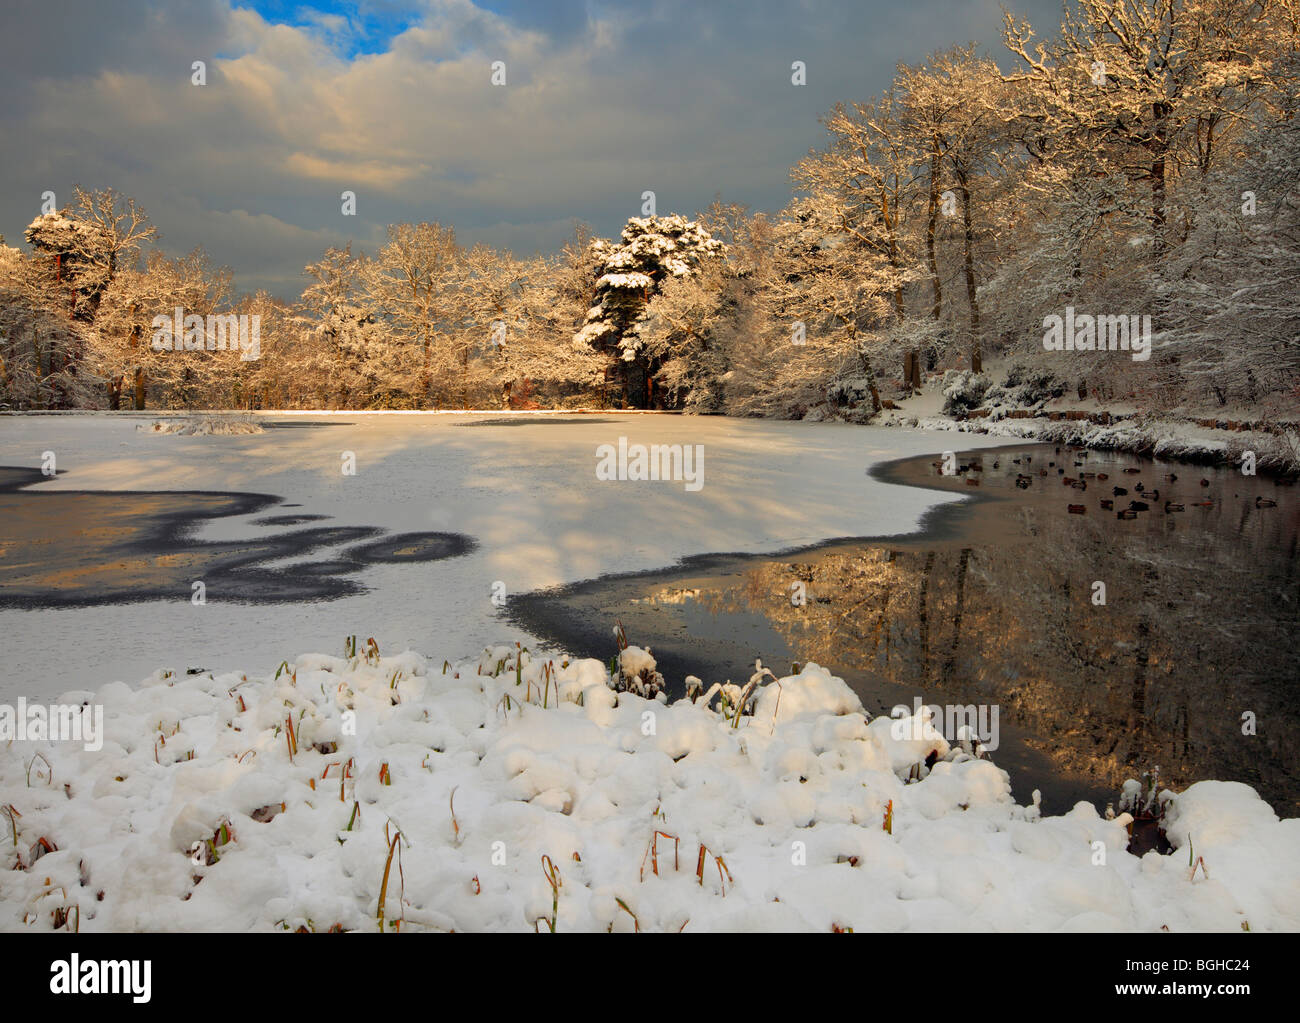 Keston Ponds winter scene. - Stock Image